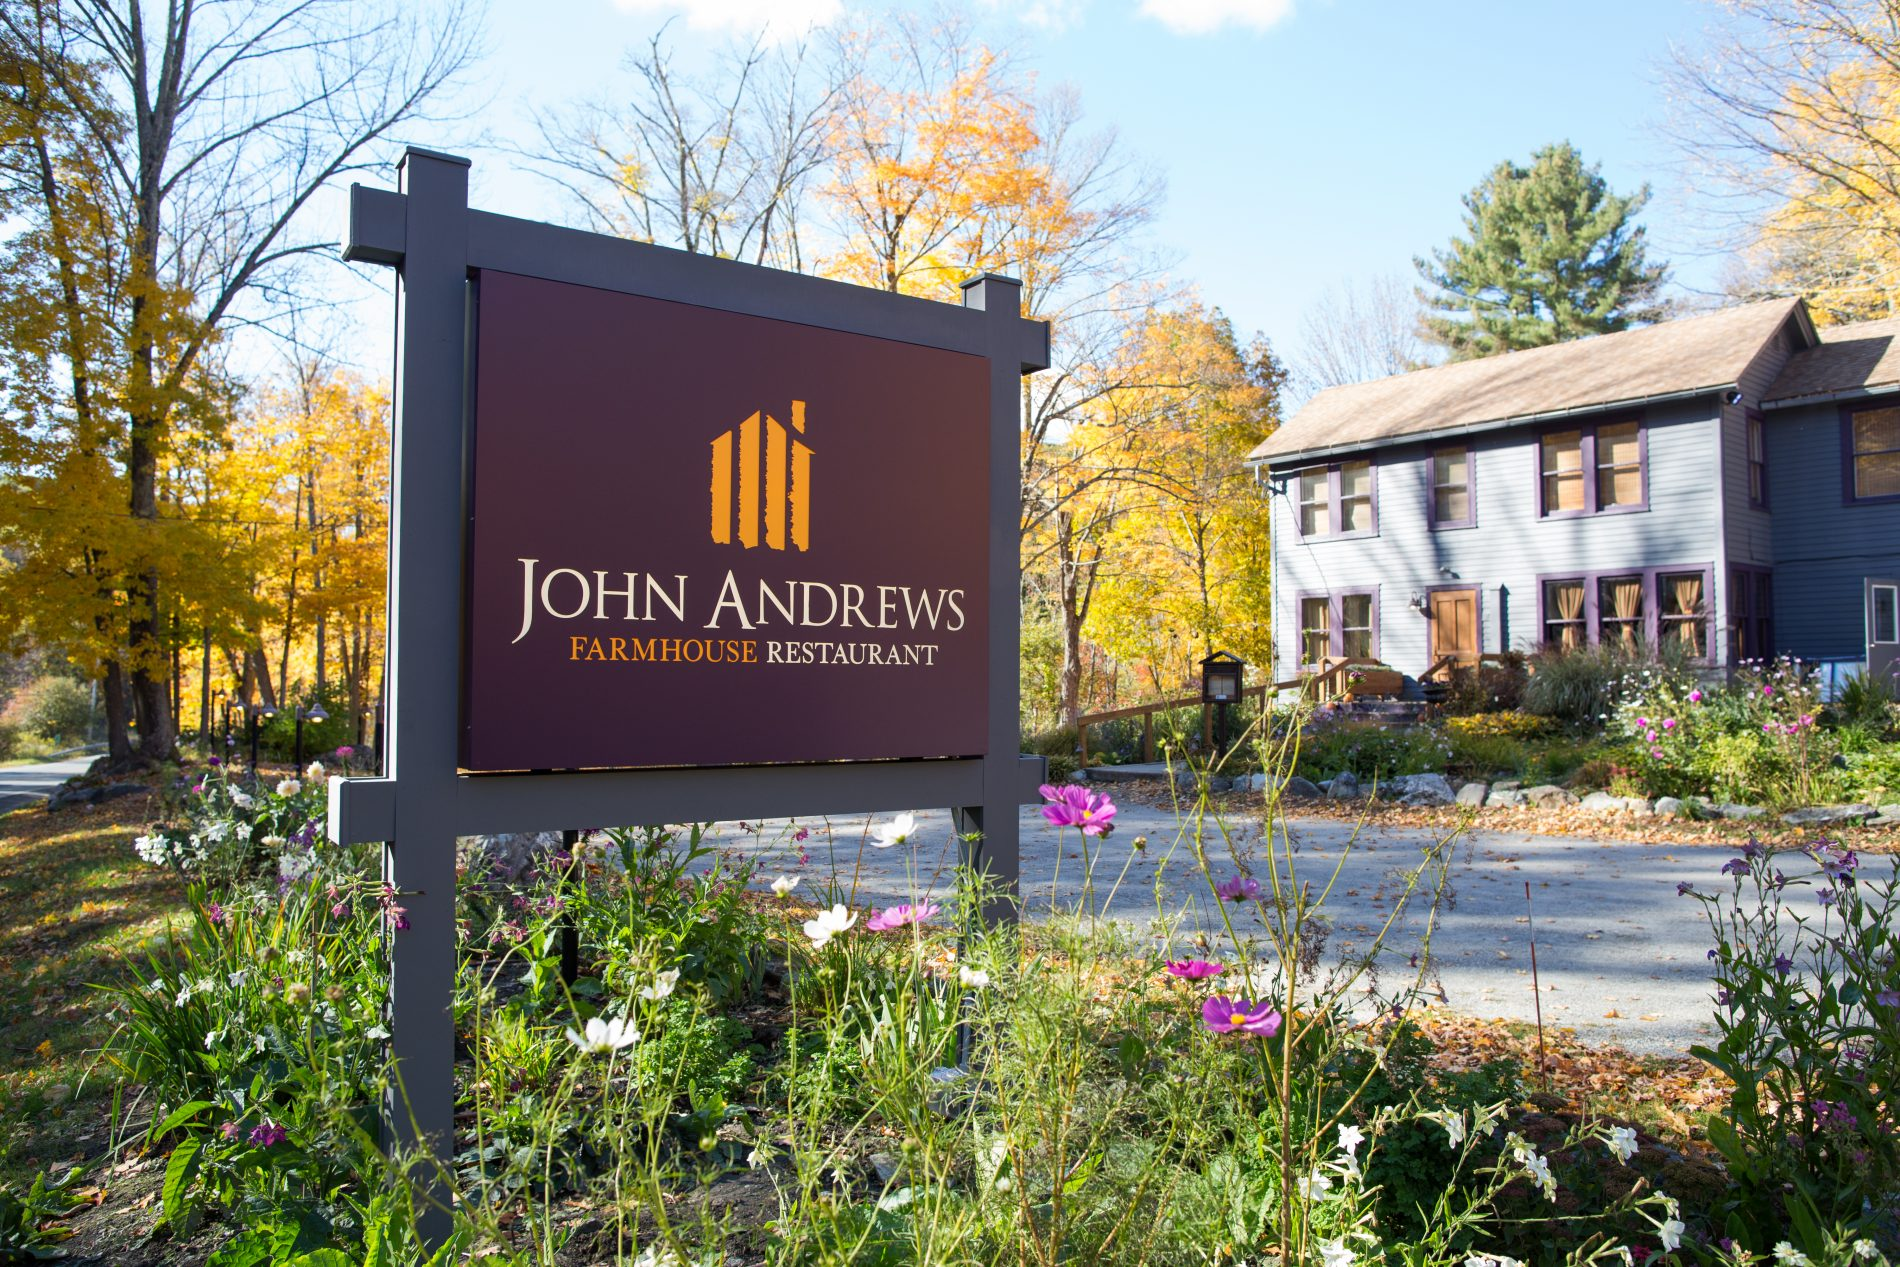 John Andrews Farmhouse Restaurant Media Inquiries John Andrews Farmhouse Restaurant